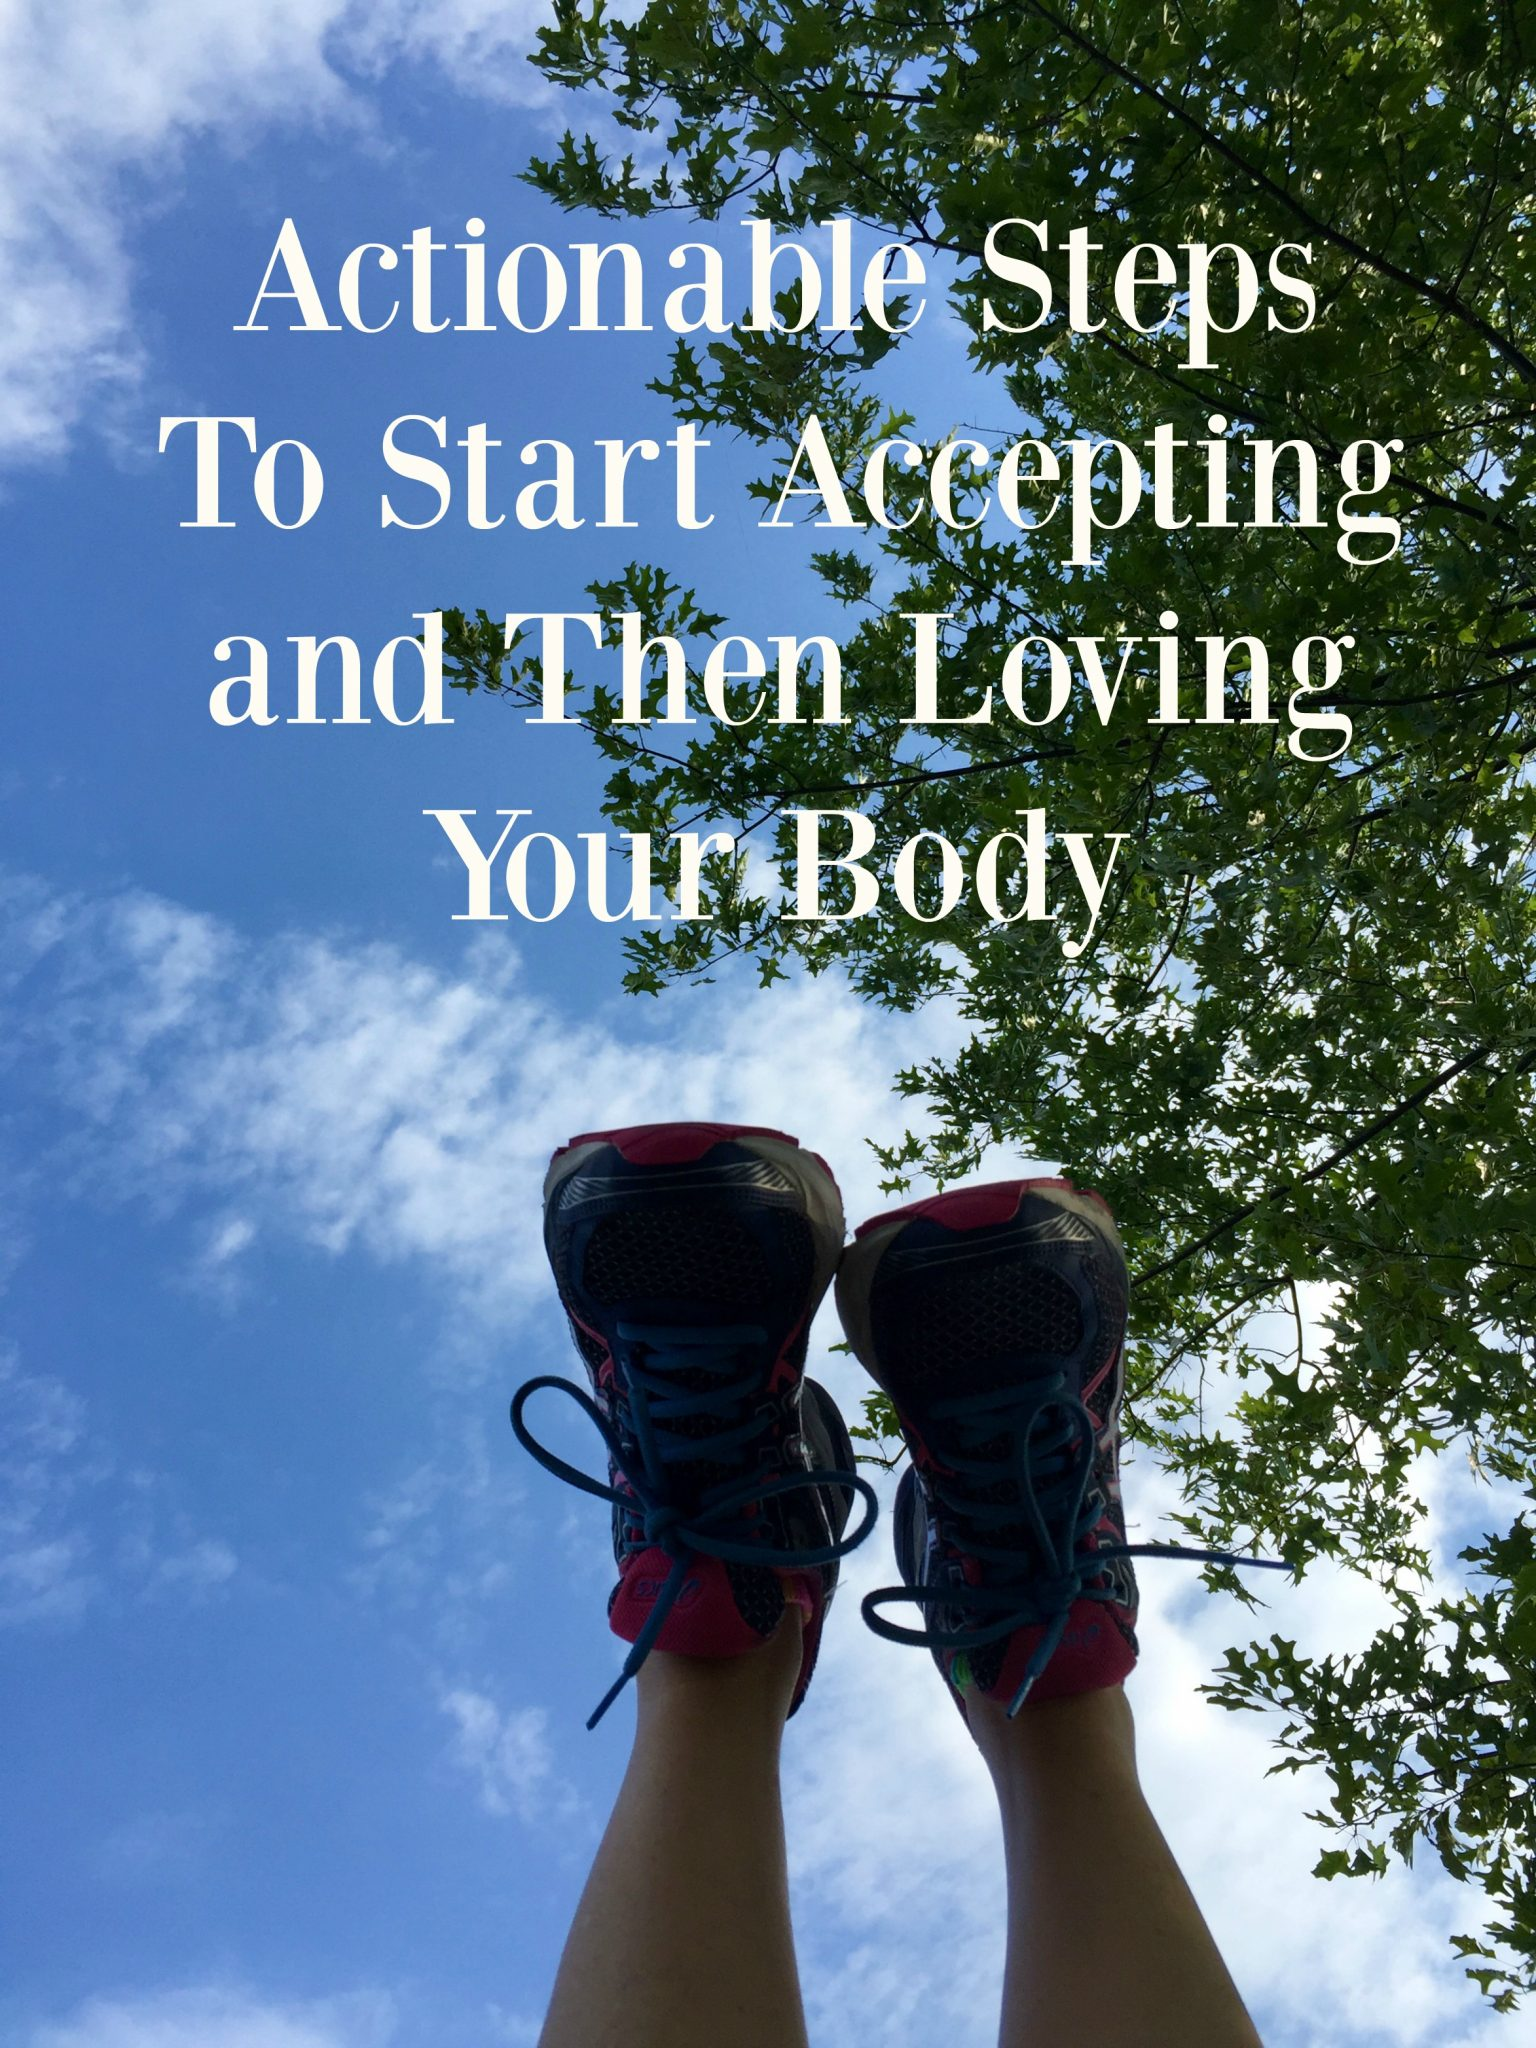 actionable ways to accept, then love your body